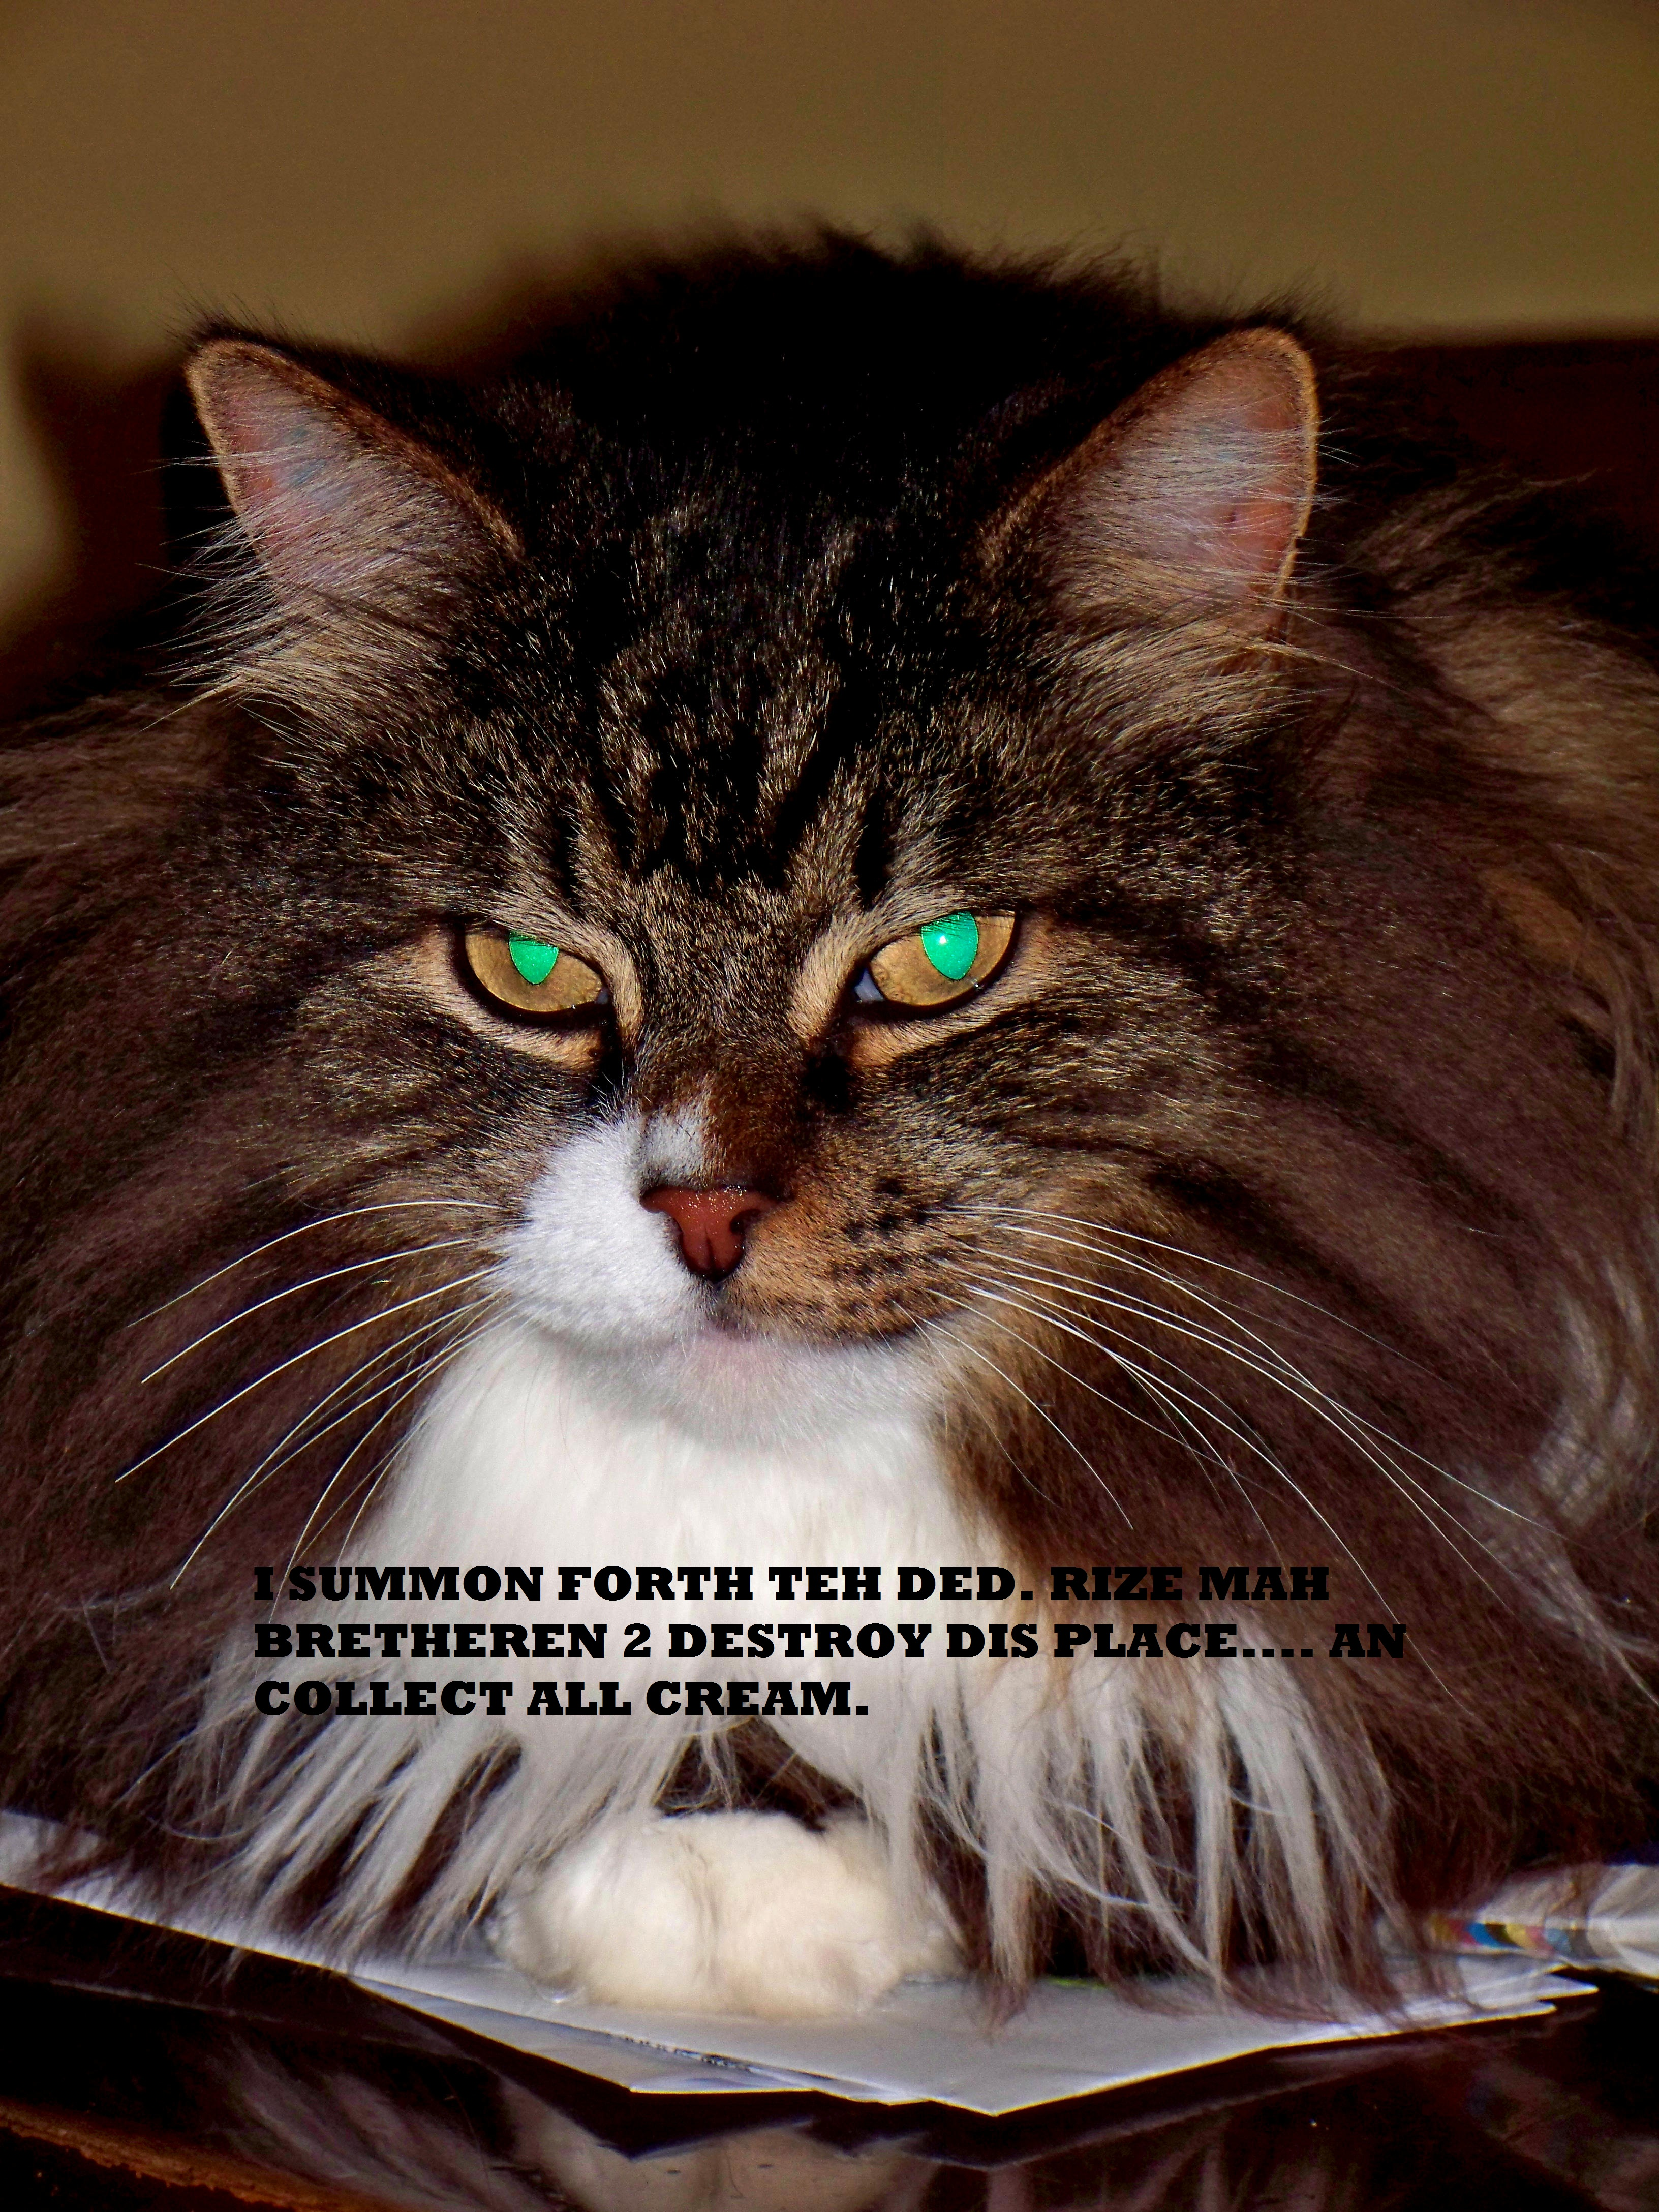 lolcats entry 008 by wolfpack5554 on deviantart